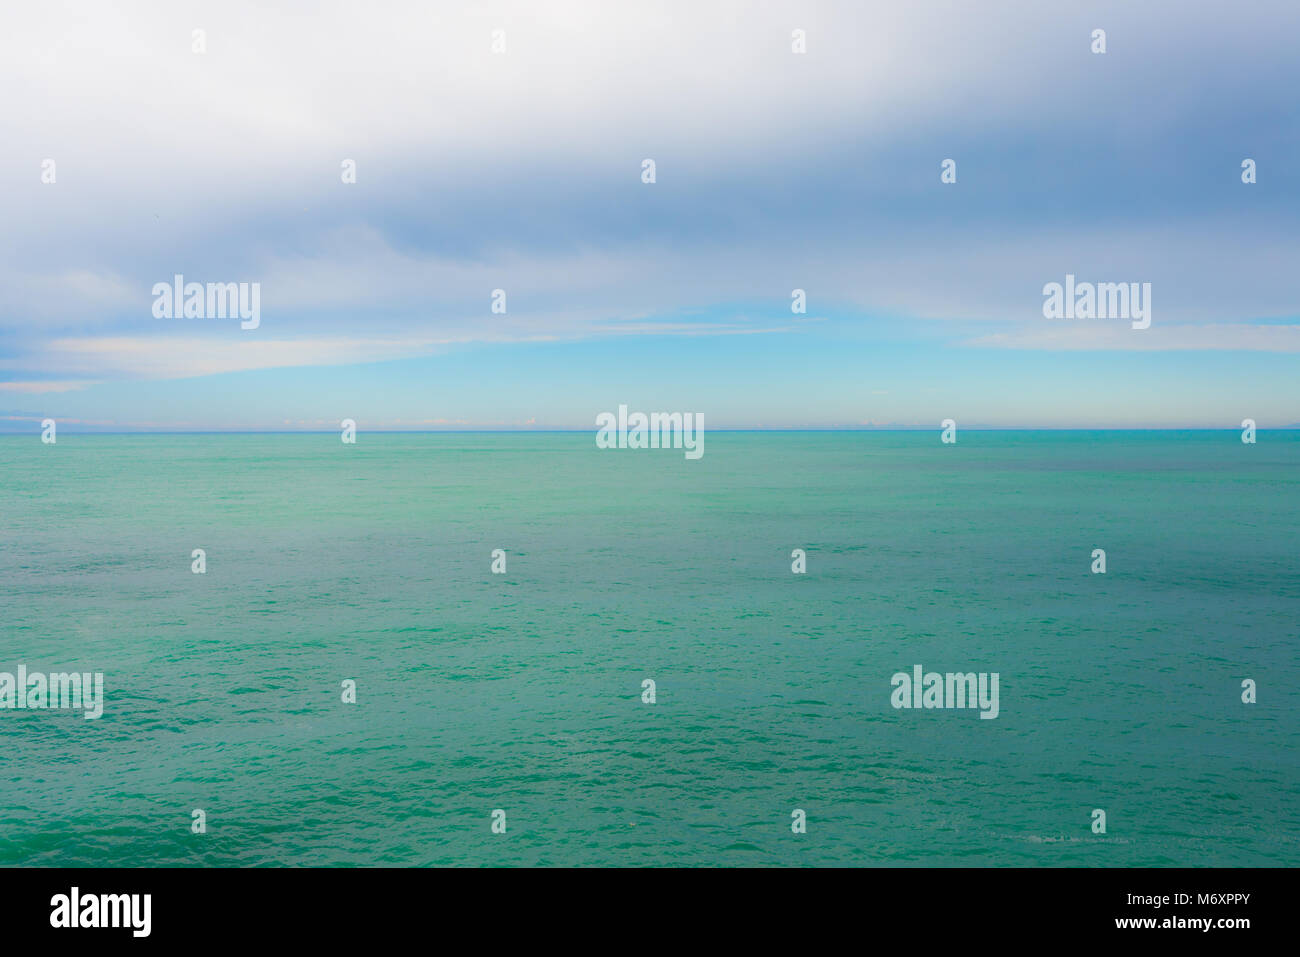 Empty horizon in open sea ocean with pastel color matte finish - Stock Image